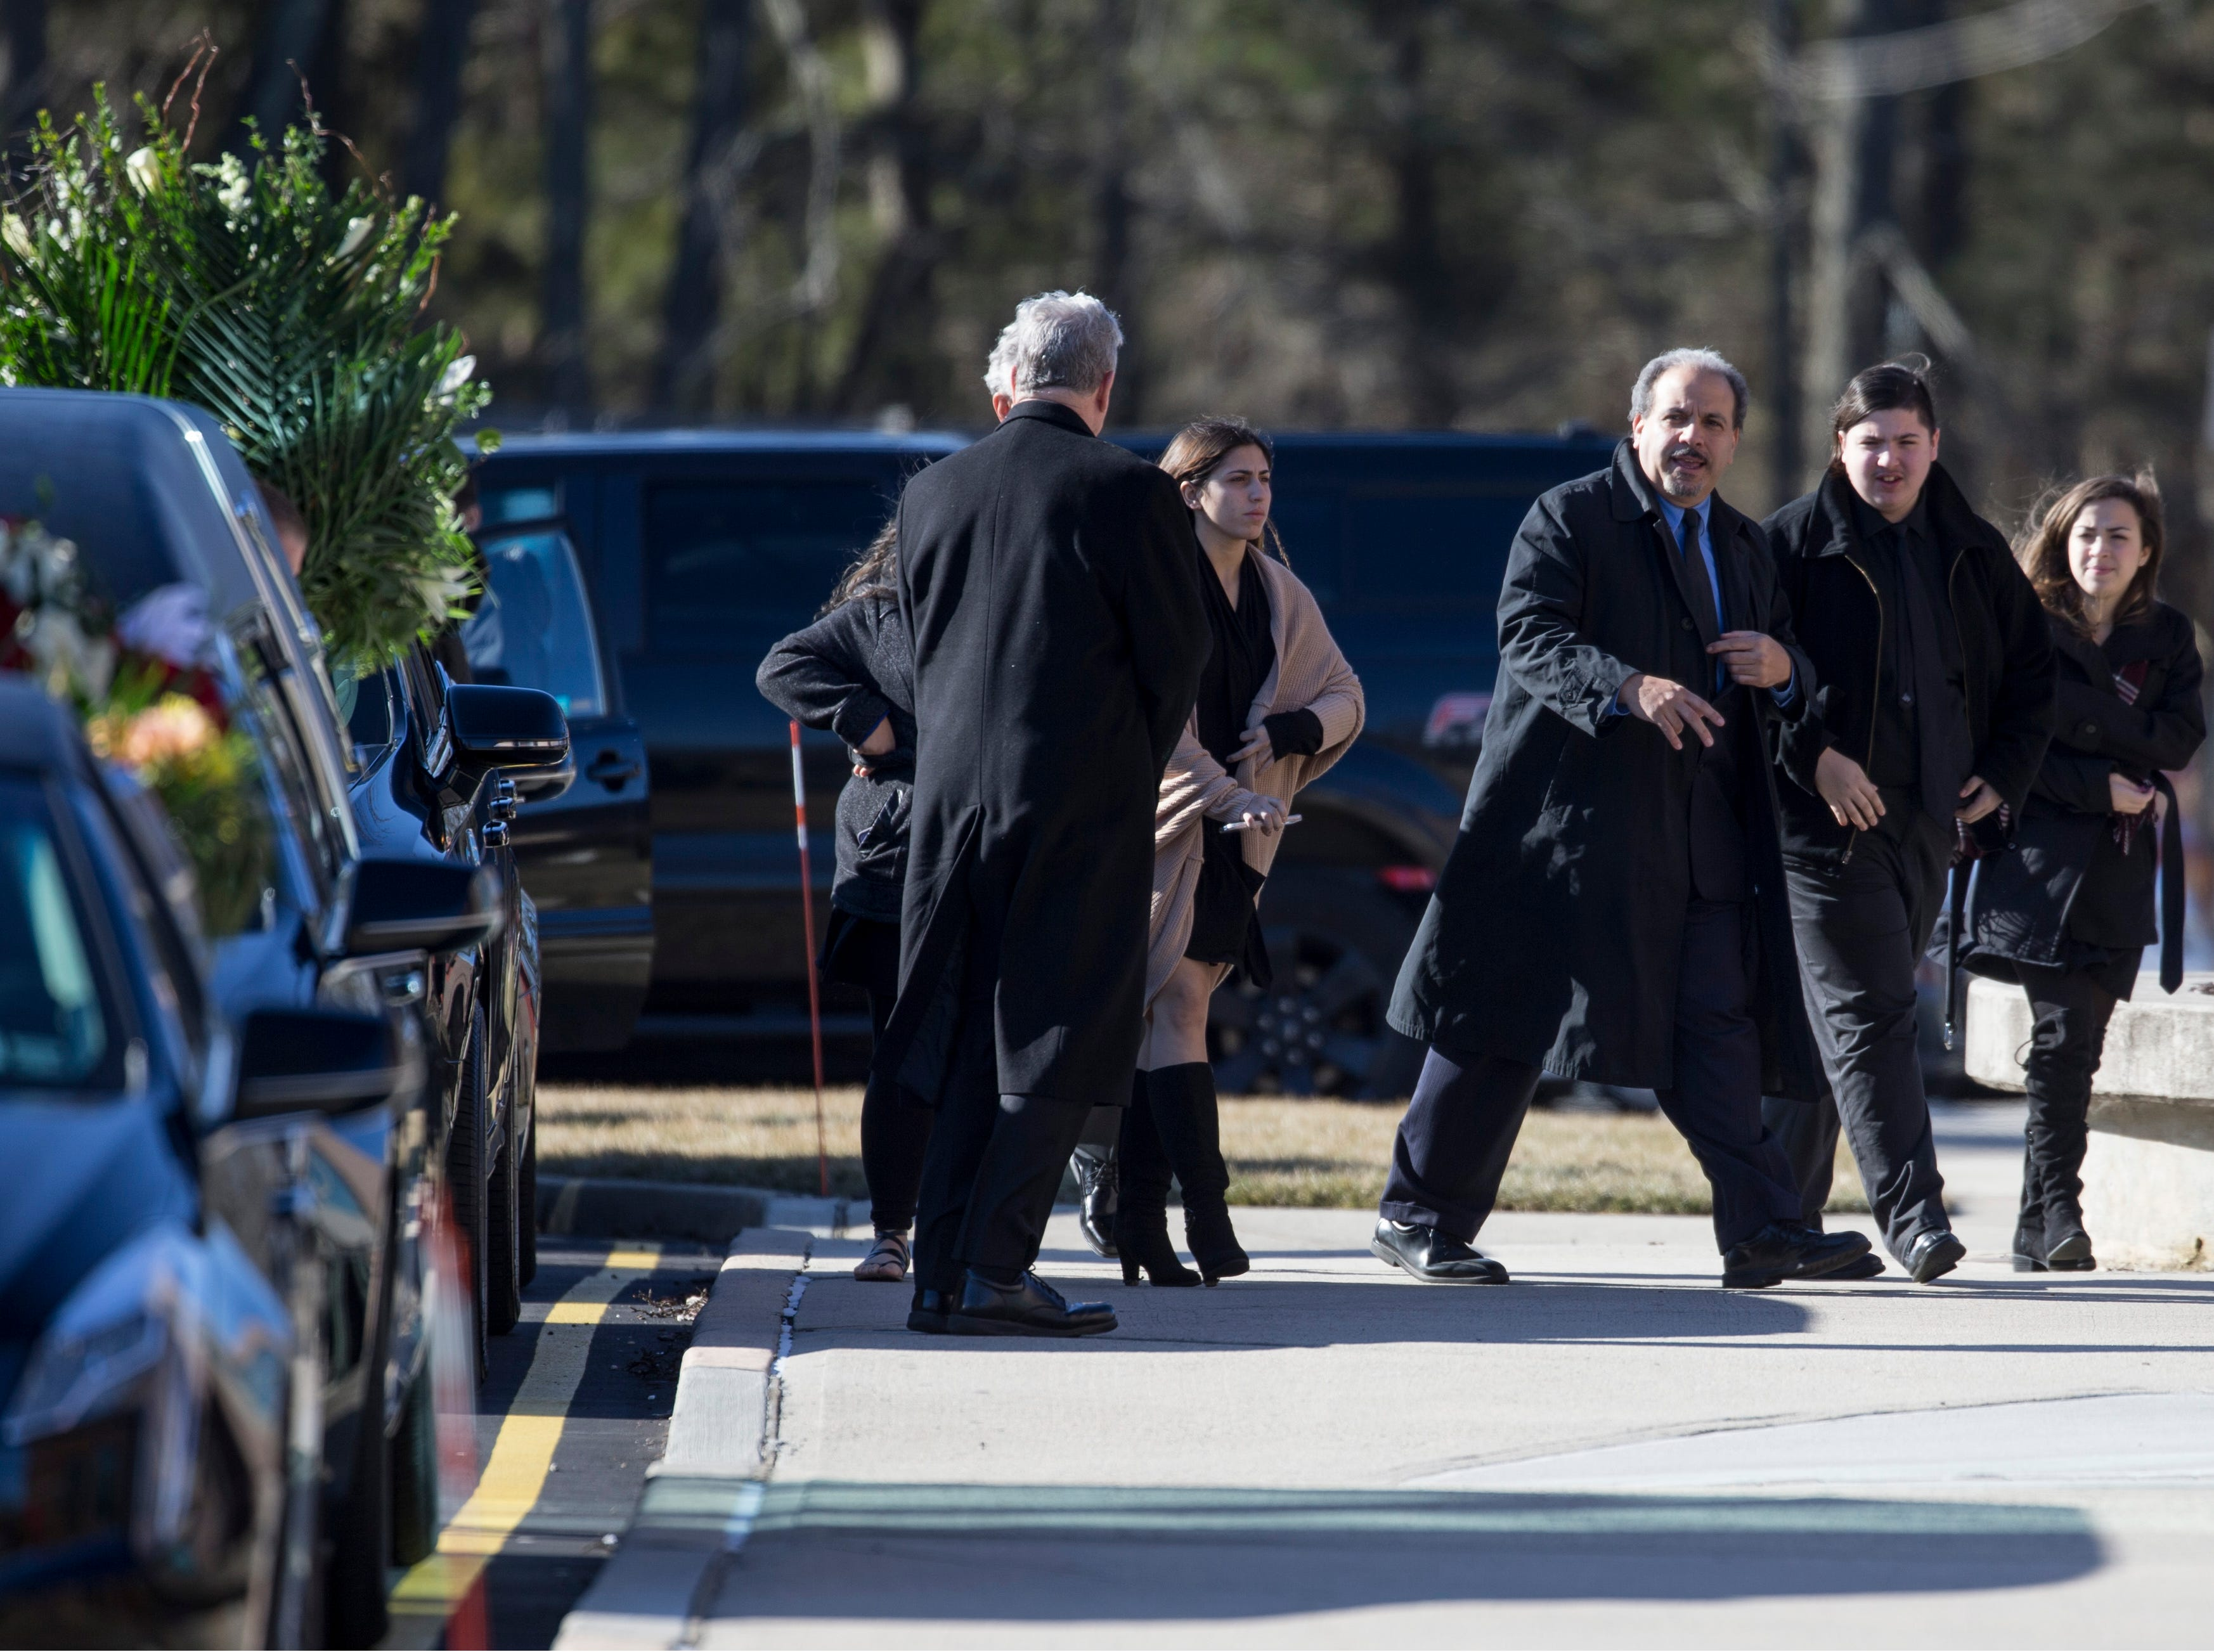 Mourners arrive at the Co-Cathedral of St. Robert Bellarmine for the funeral of Denise Bartone who lost her life earlier this week.   Freehold Township, NJSaturday, February 9, 2019